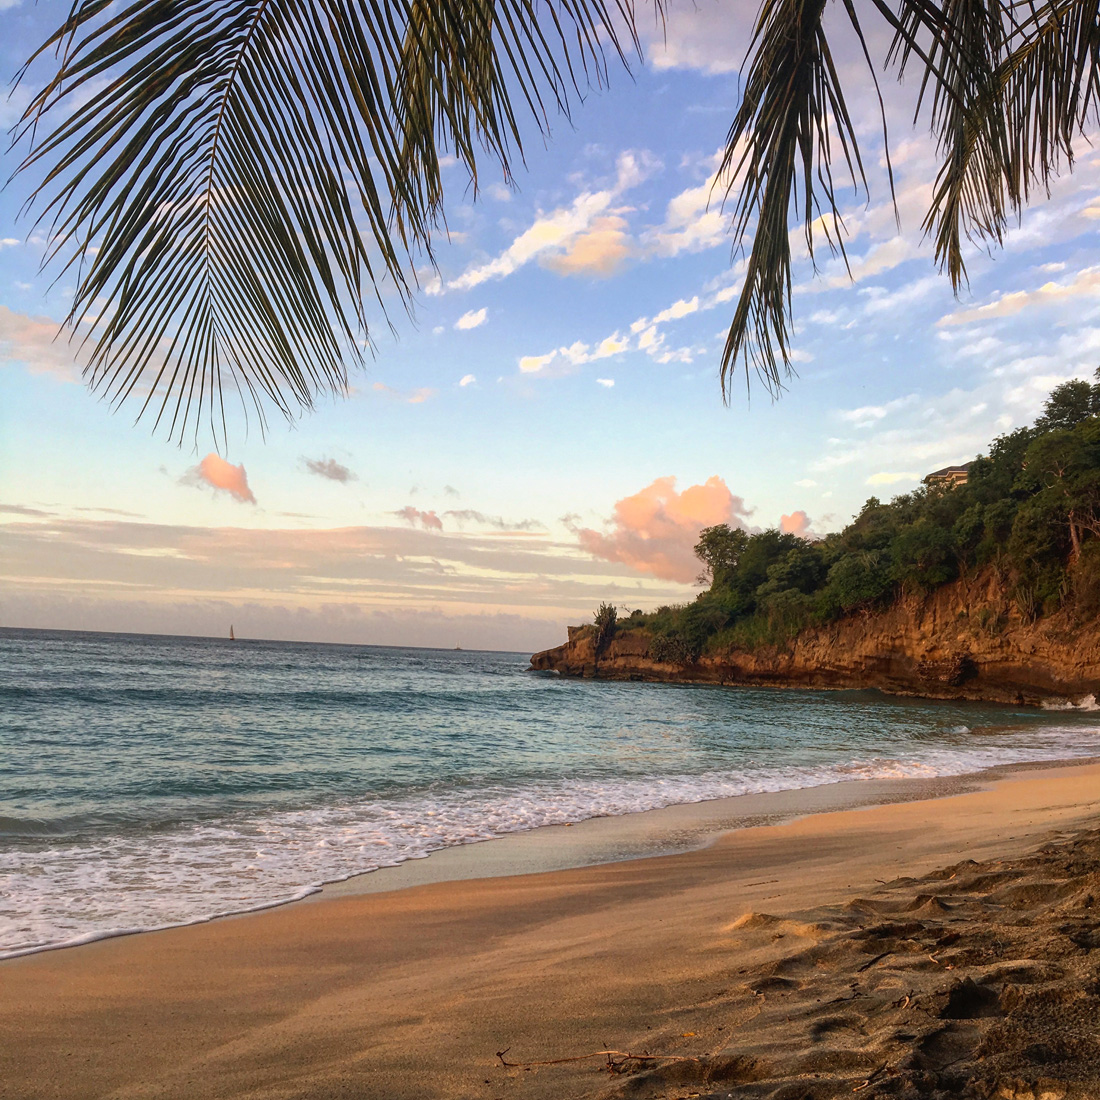 Want some alone time on the beach? Grenada is where you want to be.